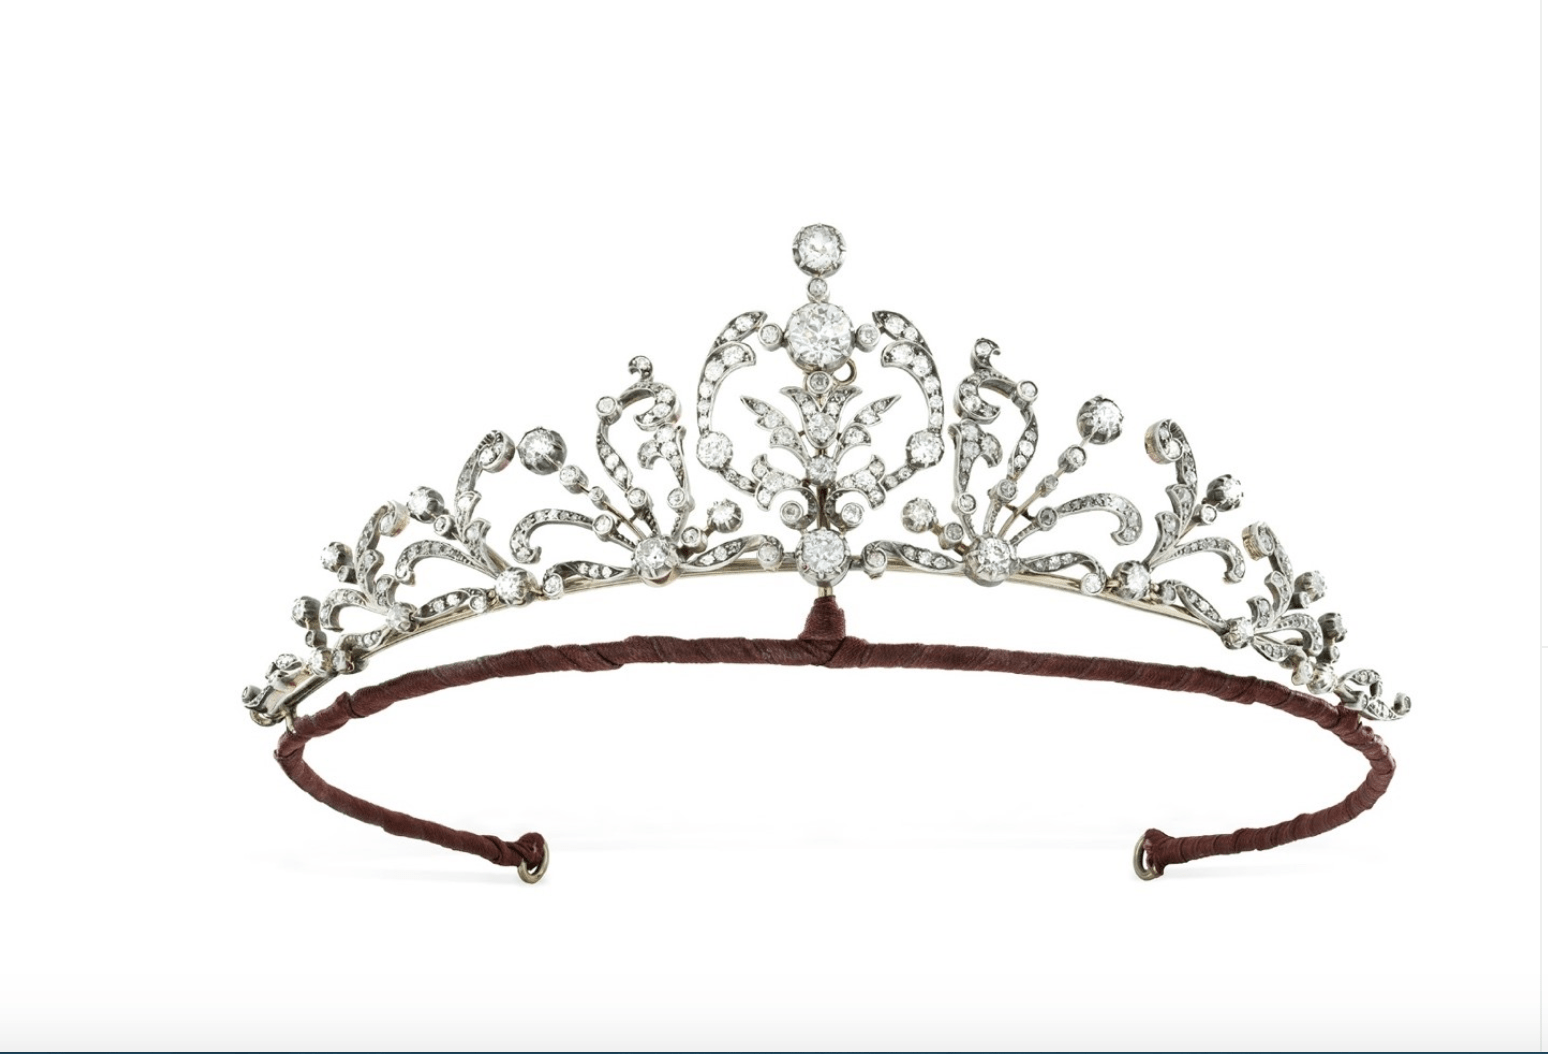 Victorian tiara set with old-cut diamonds in a  scrolling, foliate design